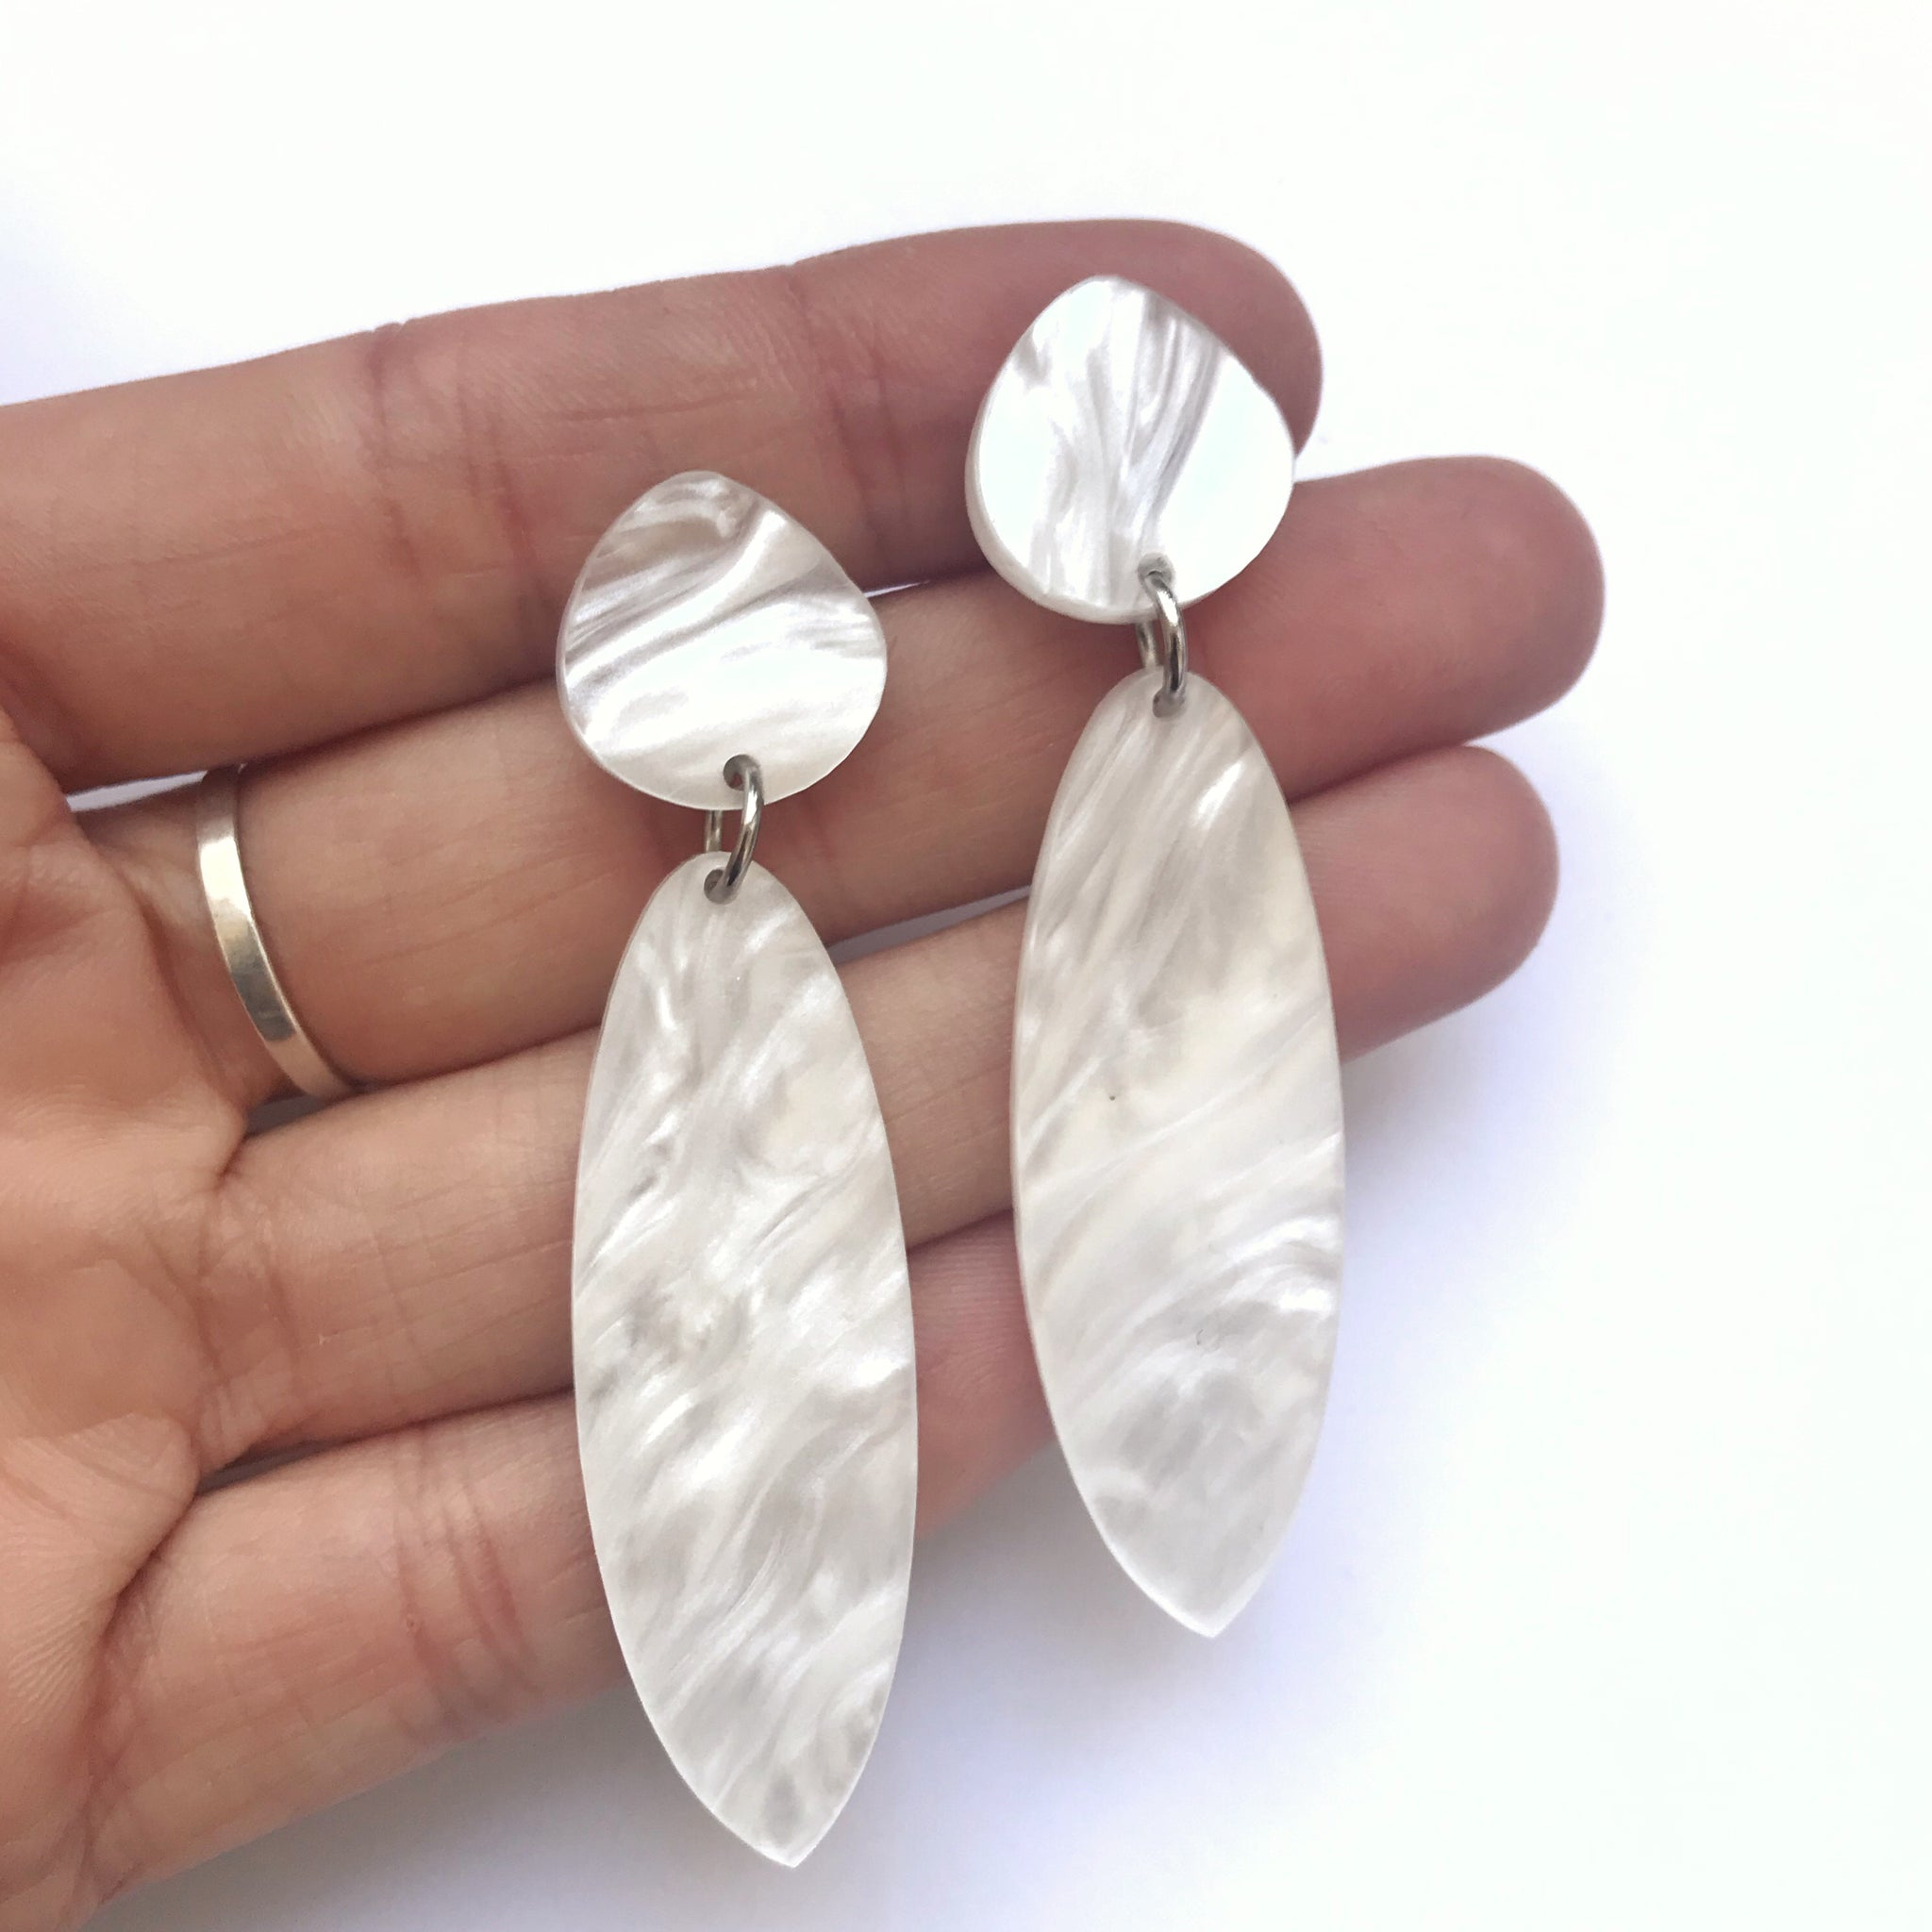 Cuttle Earrings White Marble - Mikmat Designs Earrings Laser Cut Designs